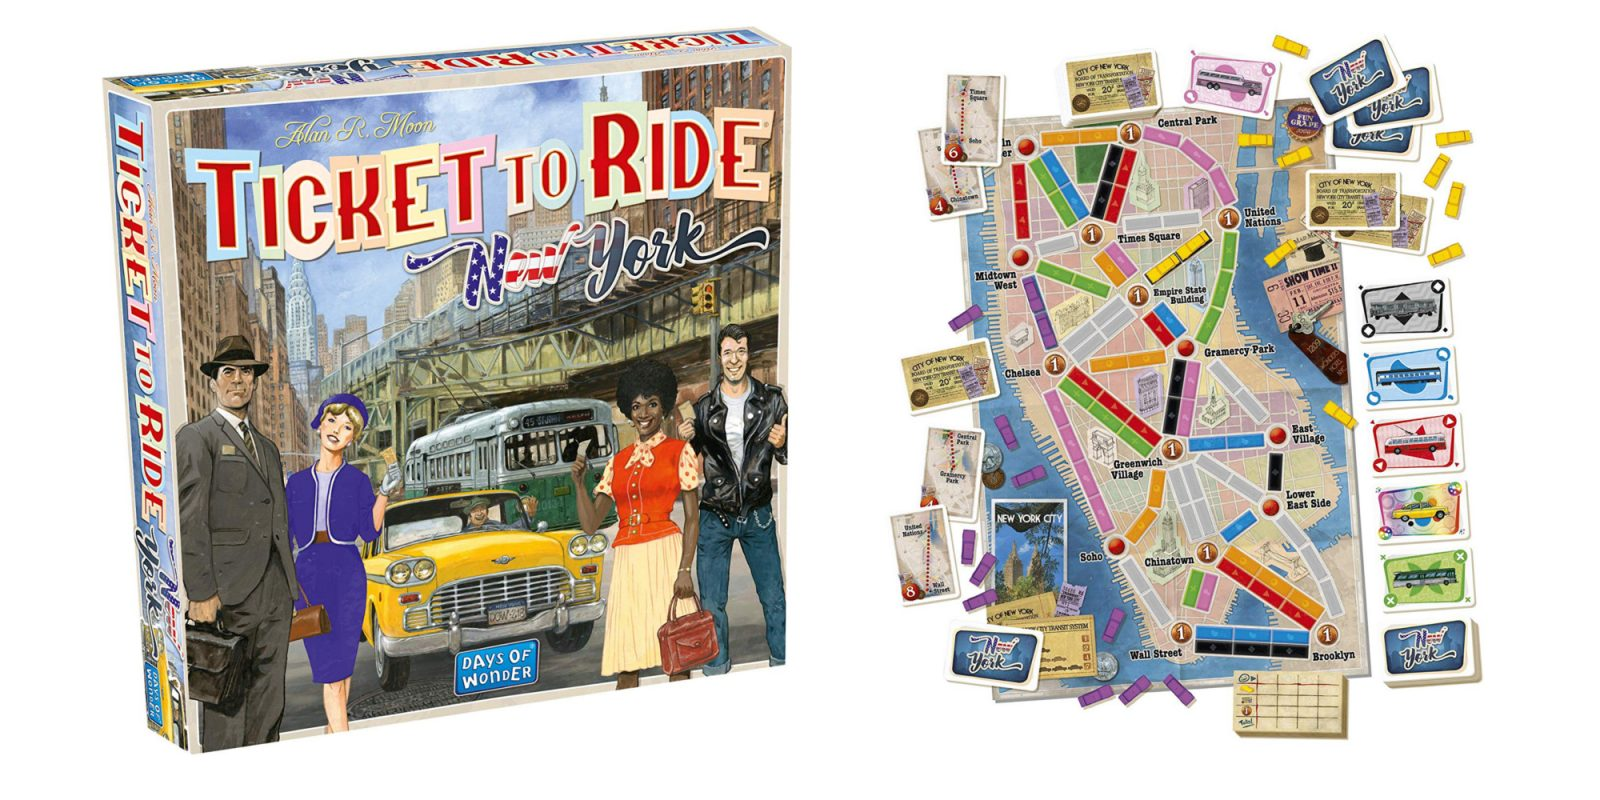 Board game deals from $6: Ticket to Ride, Monopoly, Candy Land, more